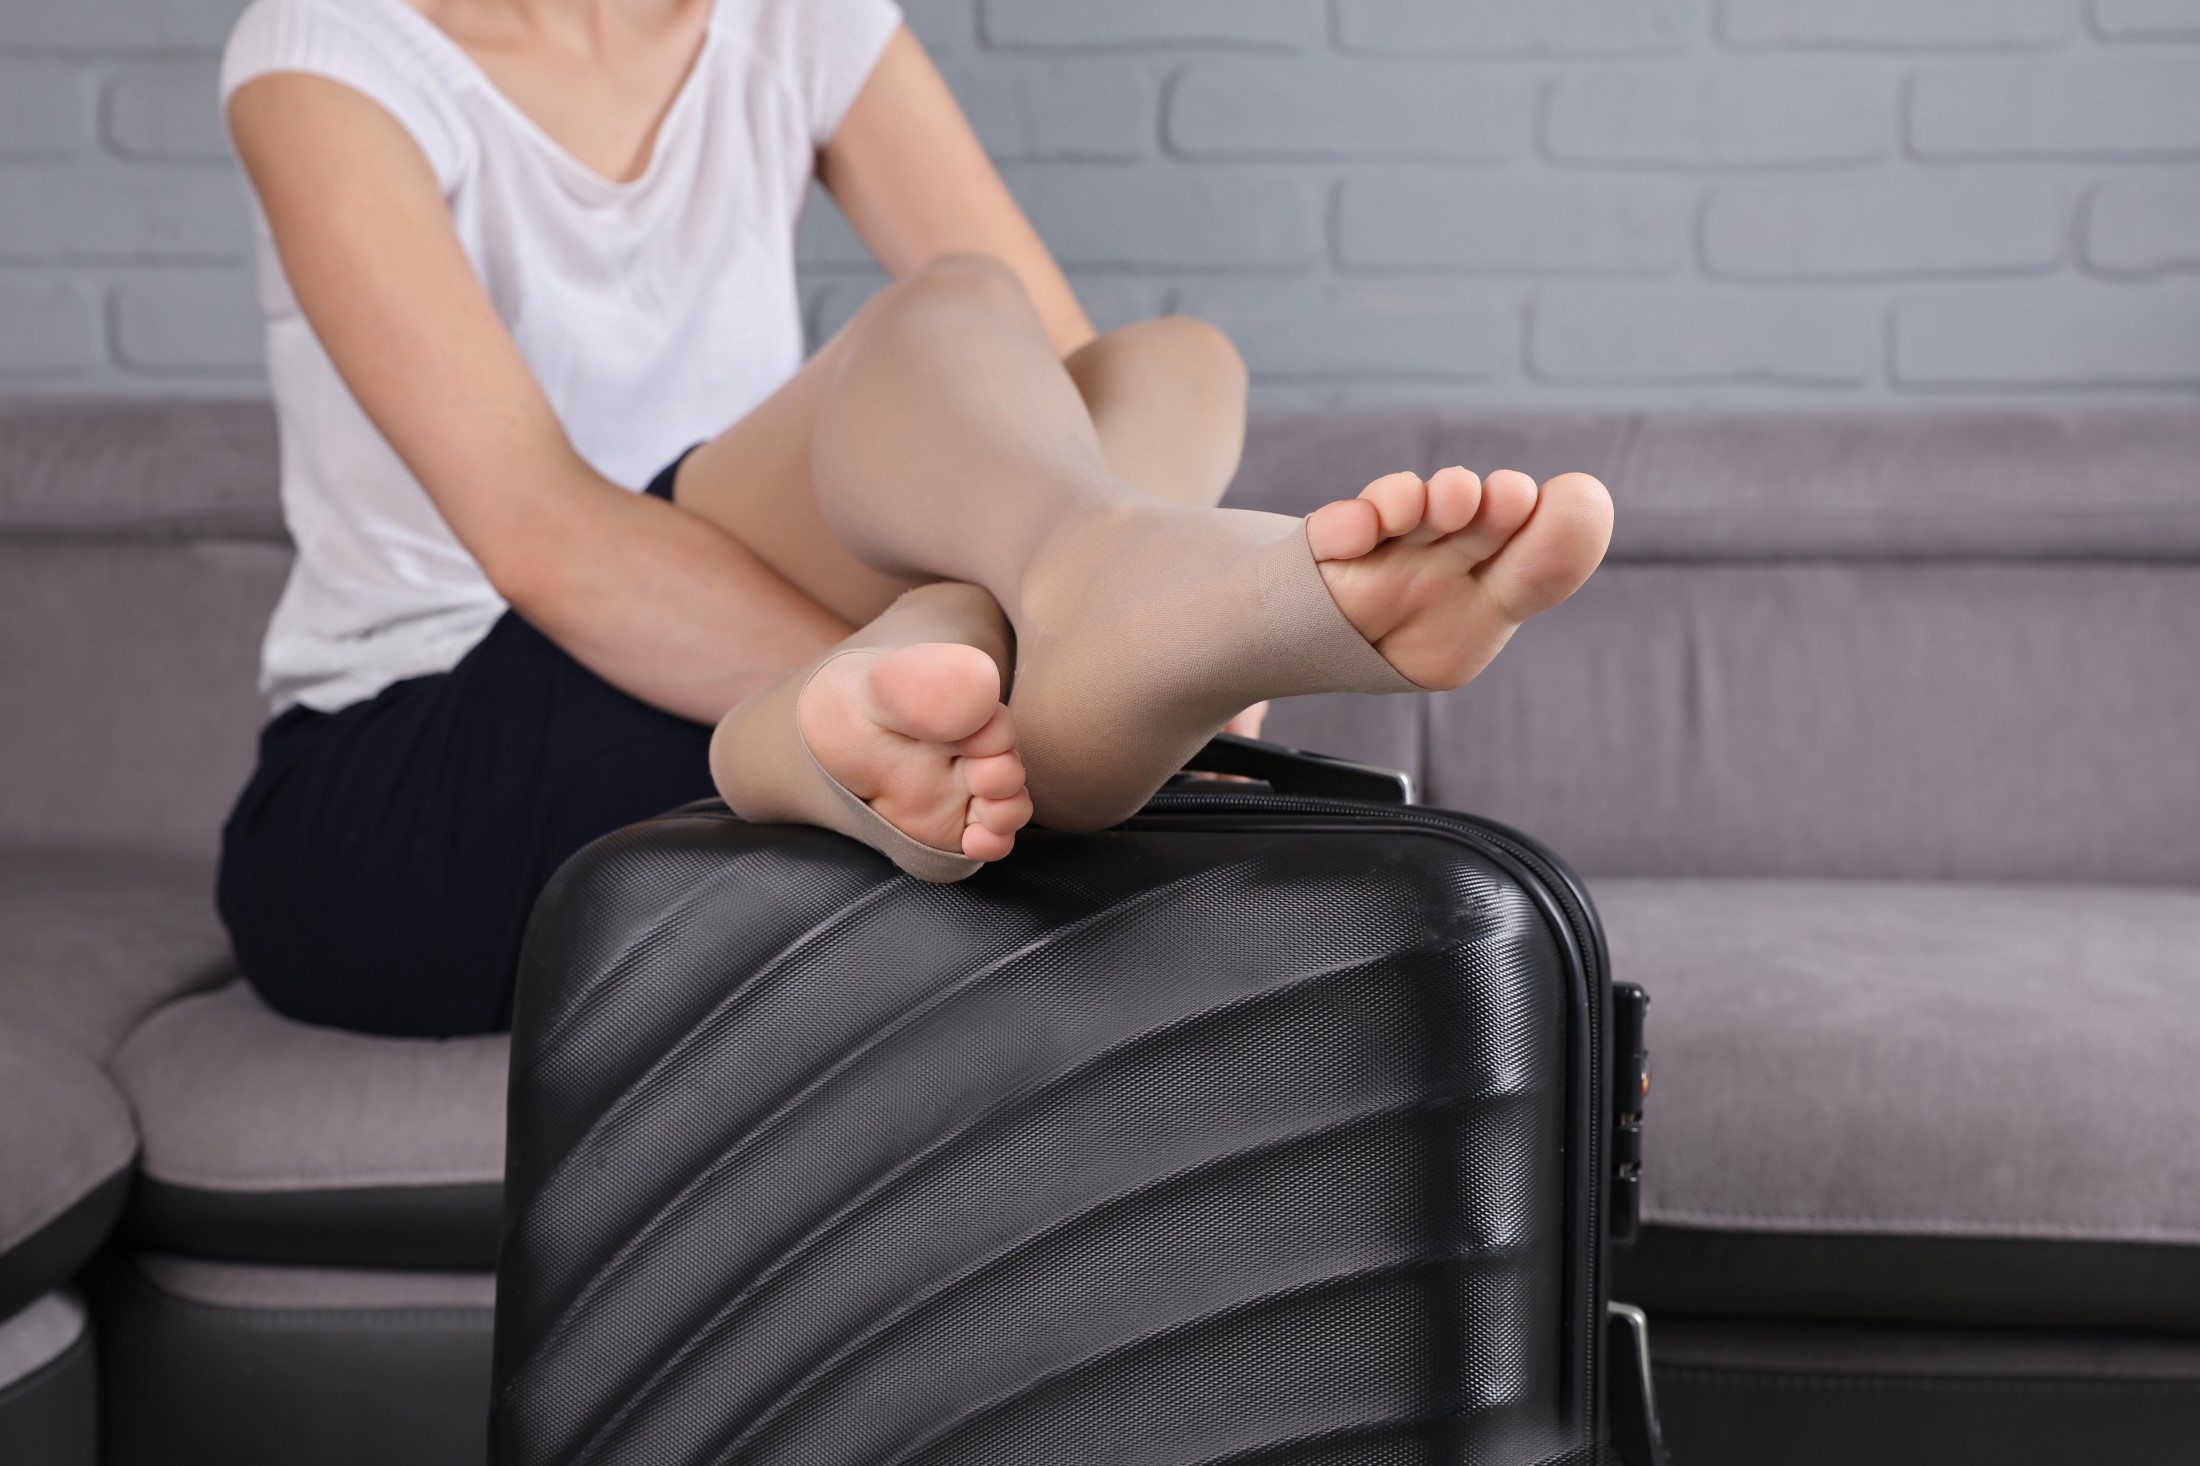 Benefits of Using Compression Garments